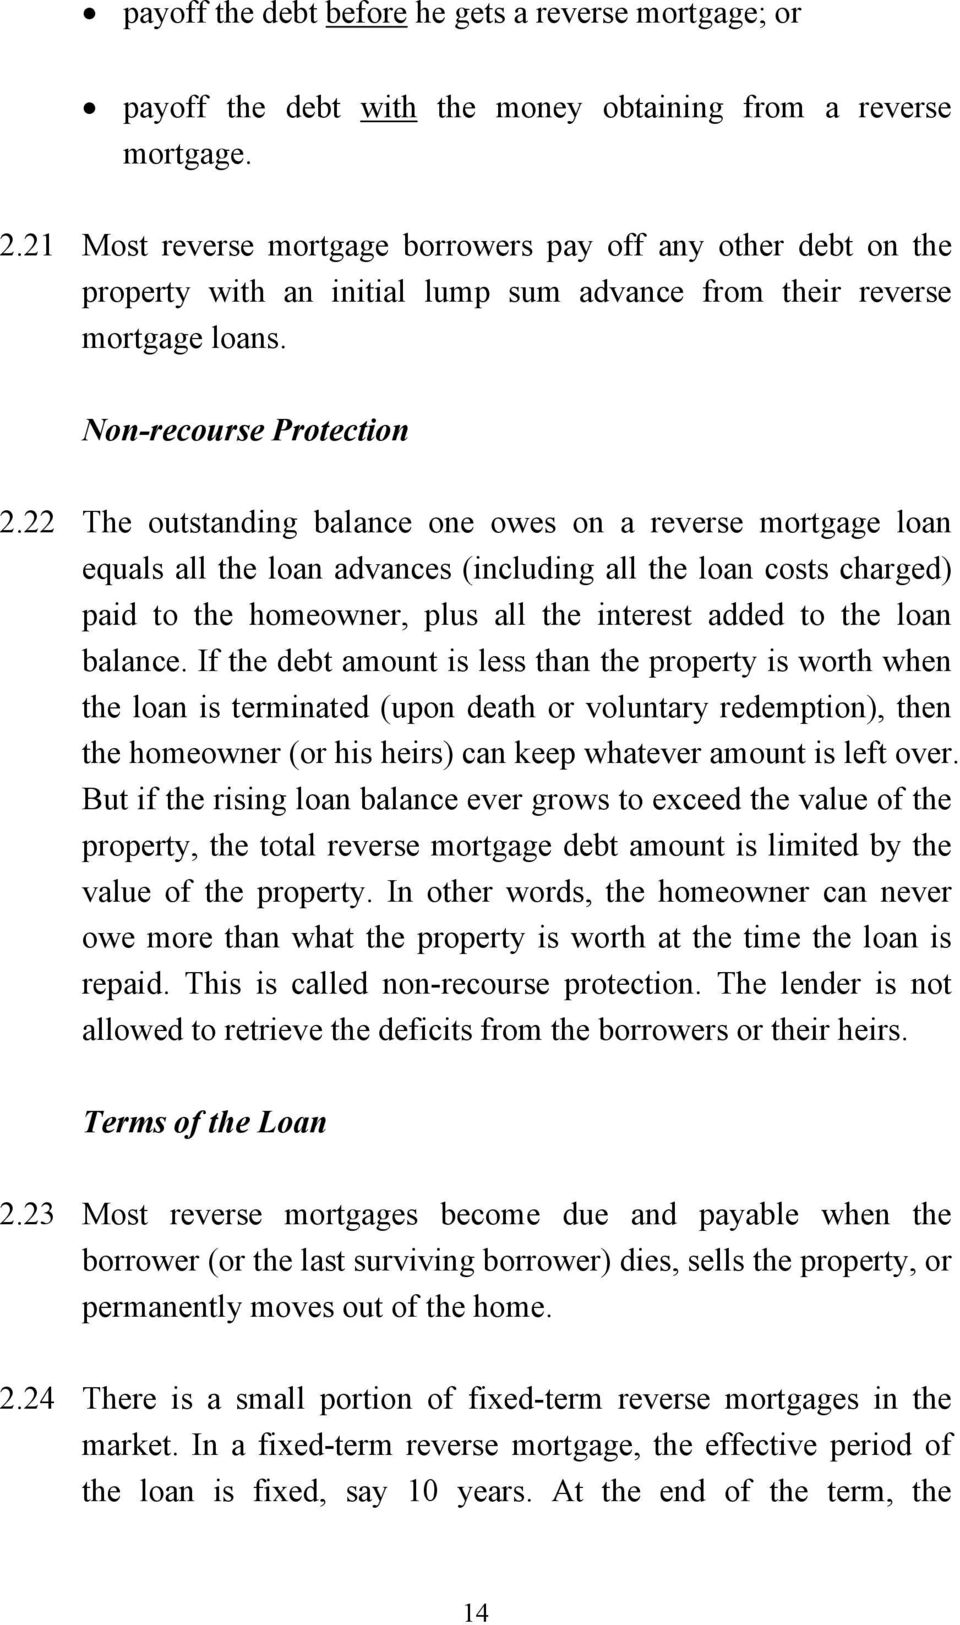 22 The outstanding balance one owes on a reverse mortgage loan equals all the loan advances (including all the loan costs charged) paid to the homeowner, plus all the interest added to the loan